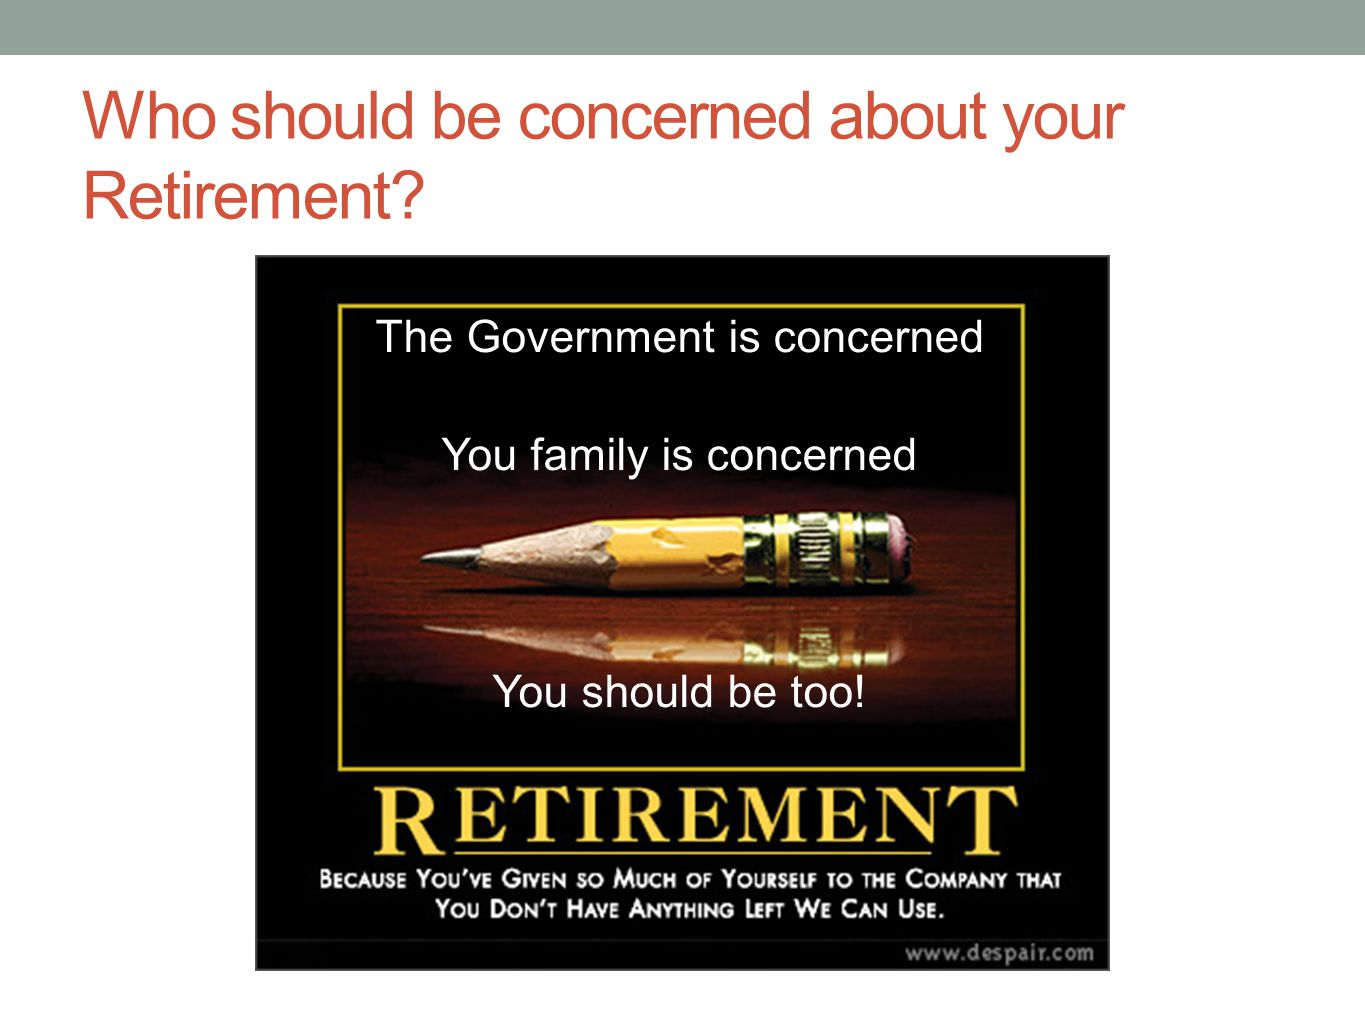 Who should be concerned about your Retirement